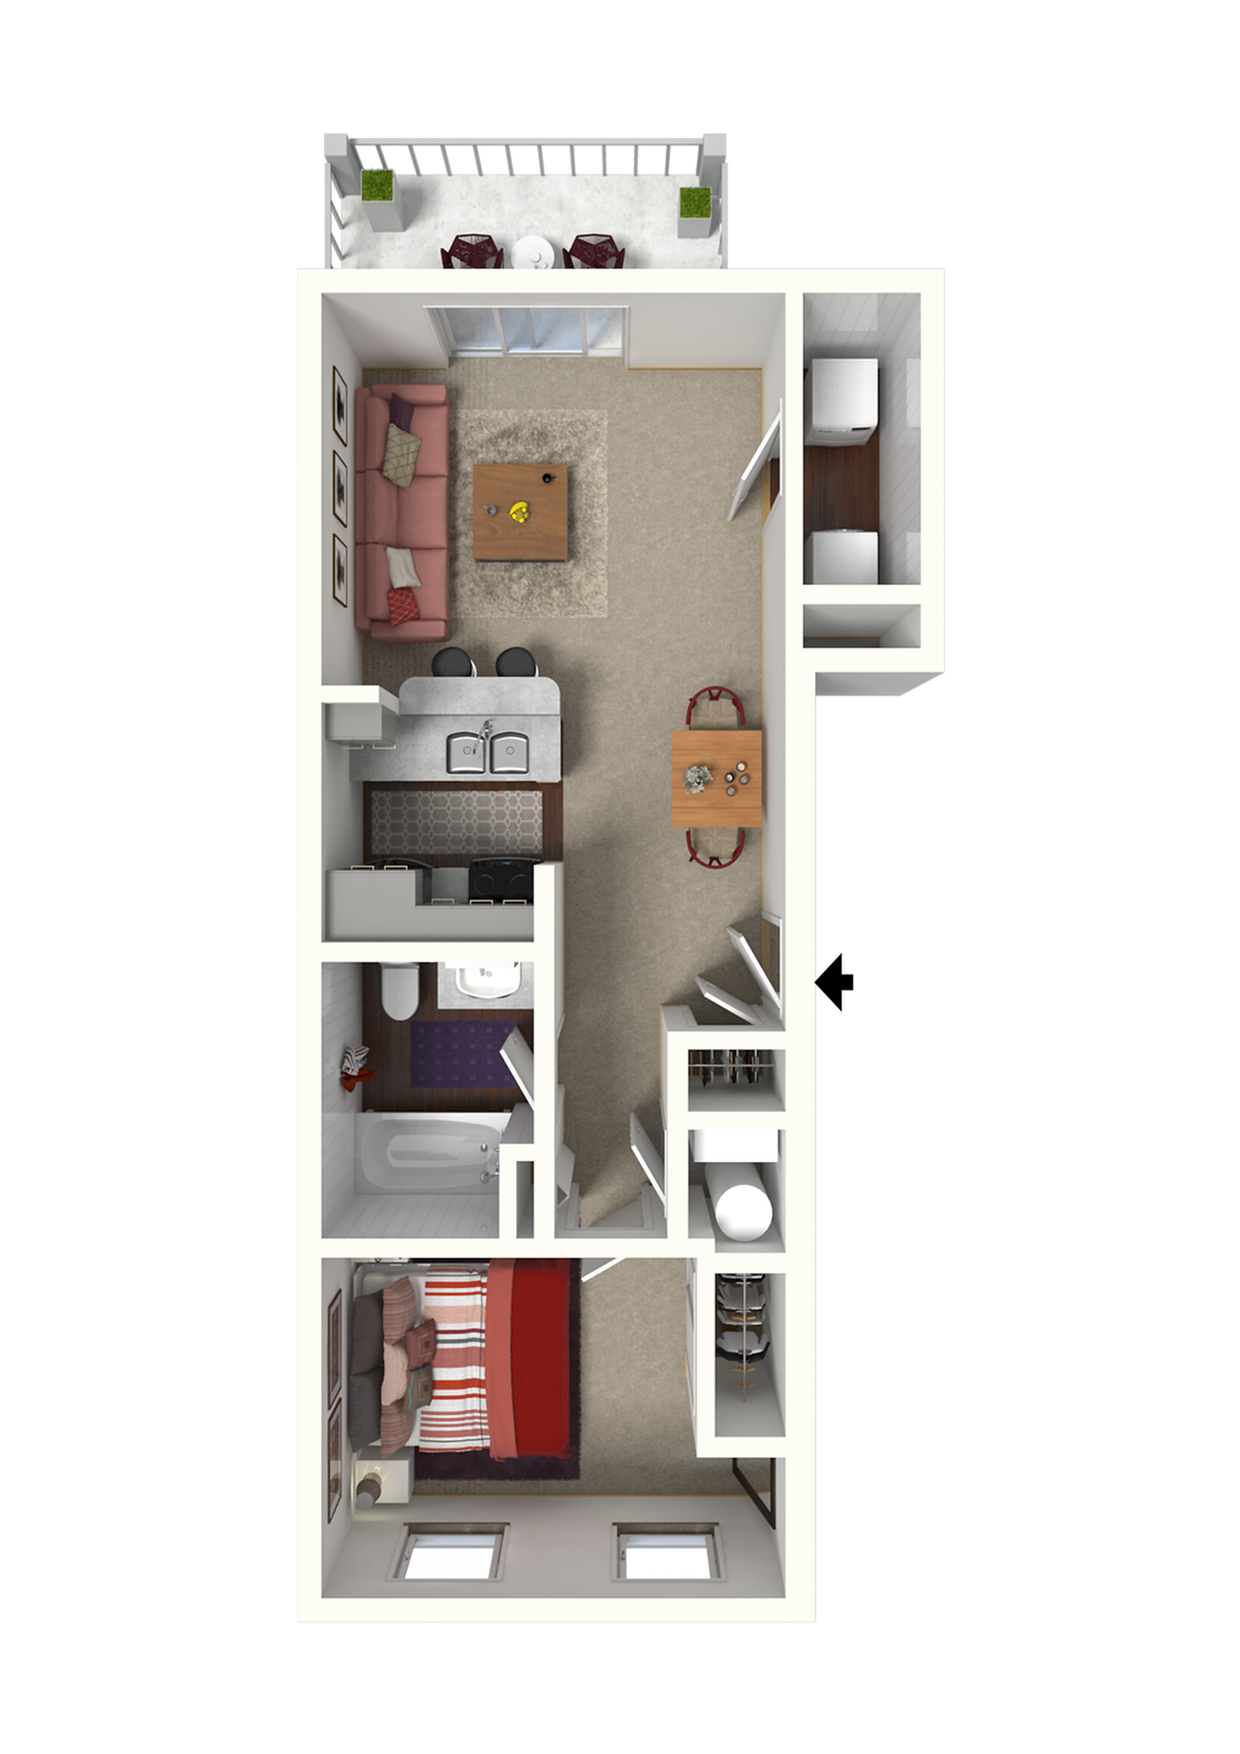 Sacramento Floor Plan - 1x1 650 Sqft.